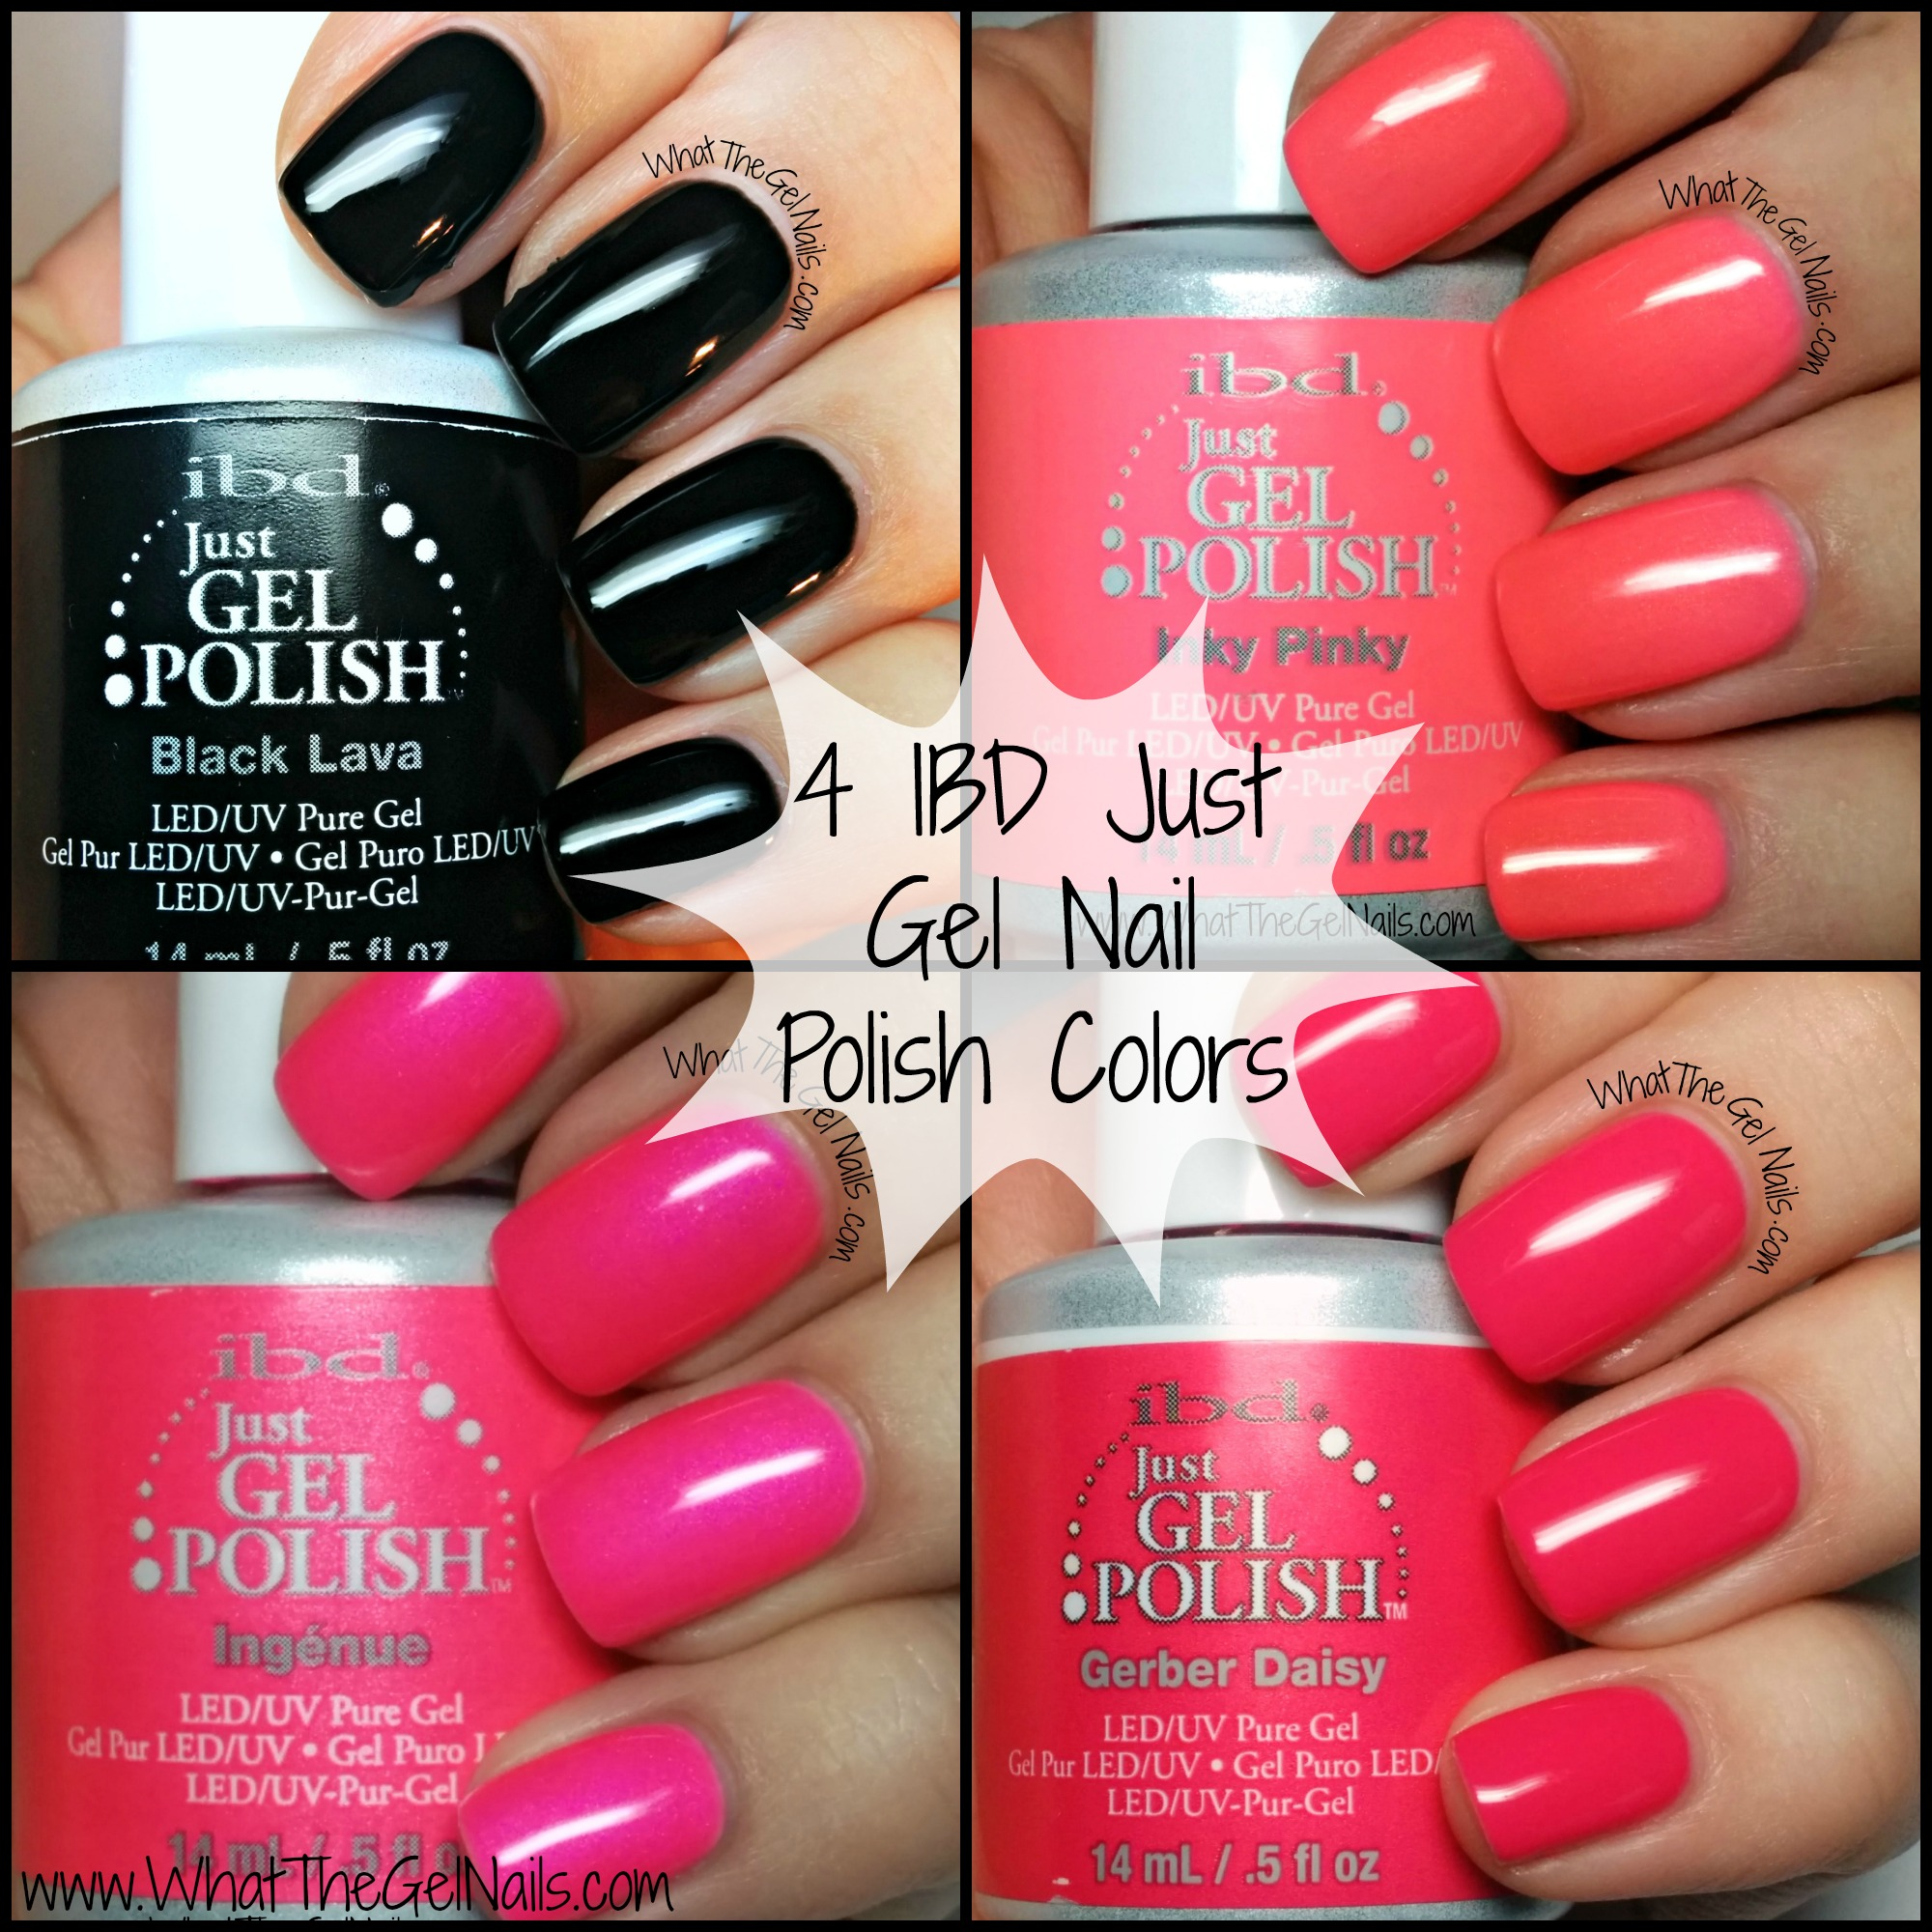 4 IBD Just Gel Nail Polish Colors